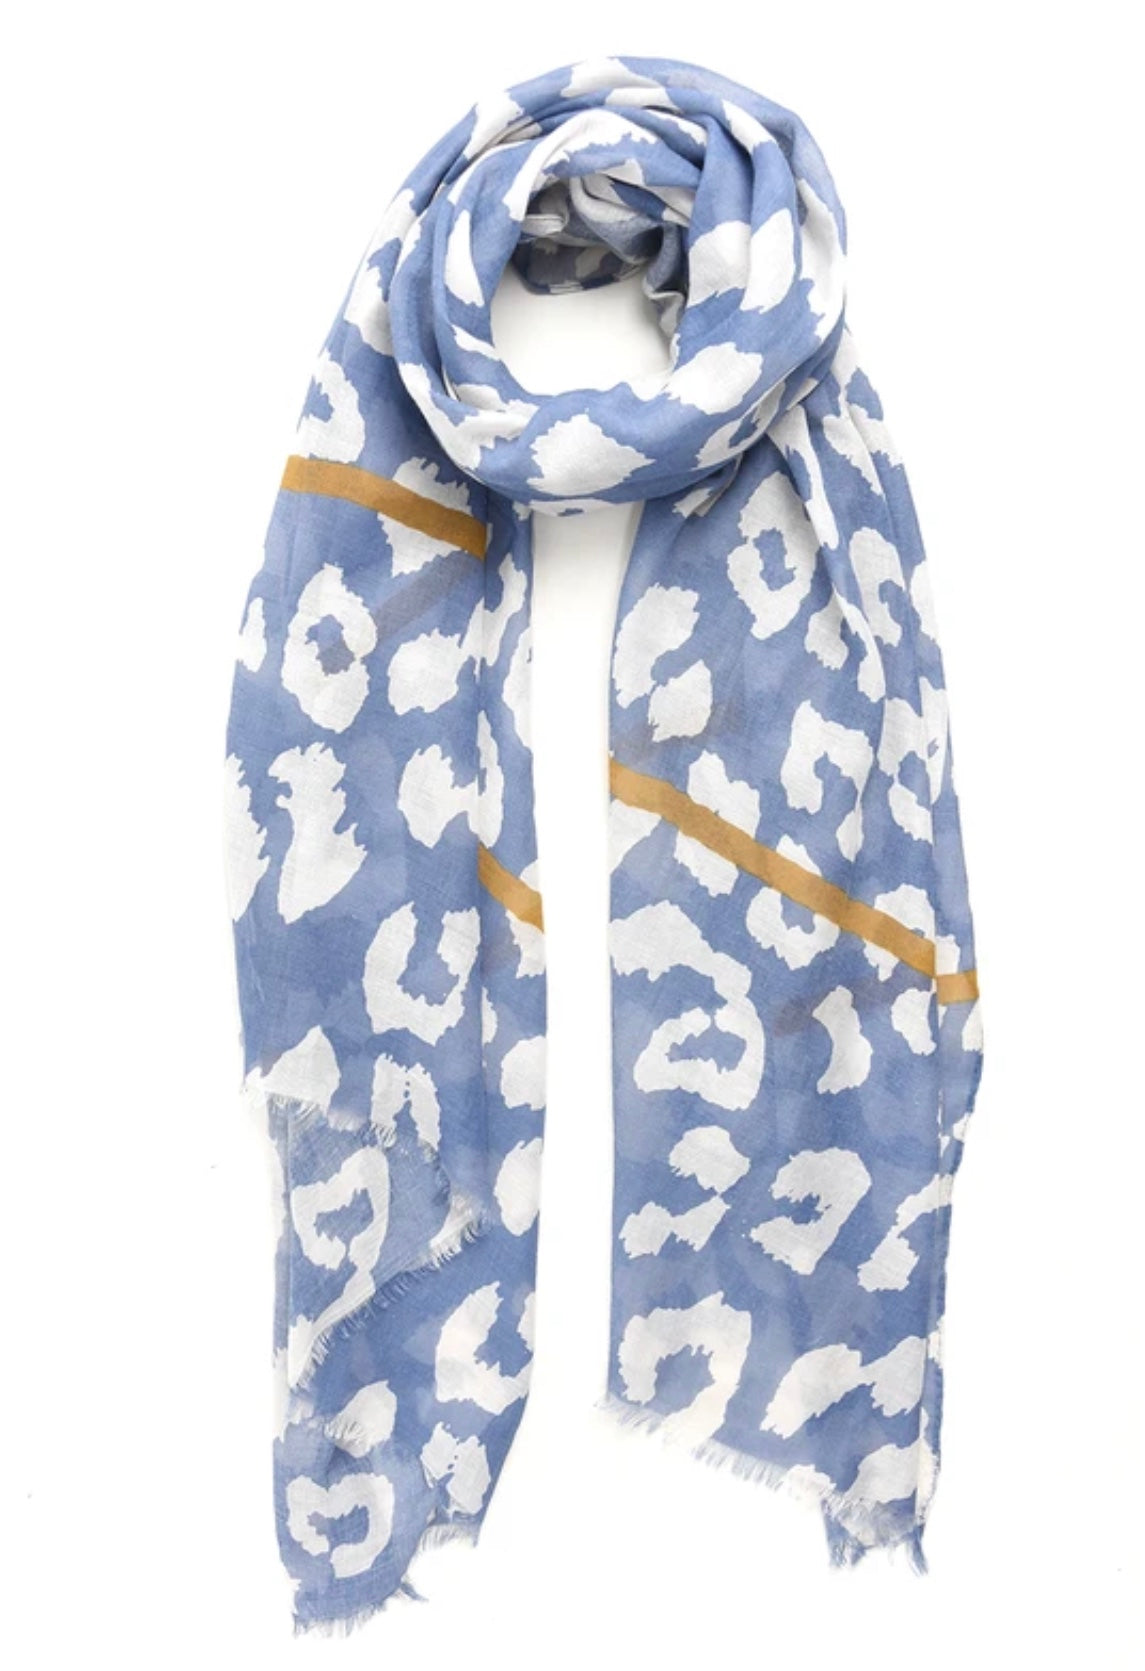 Soft blue scarf with border detail